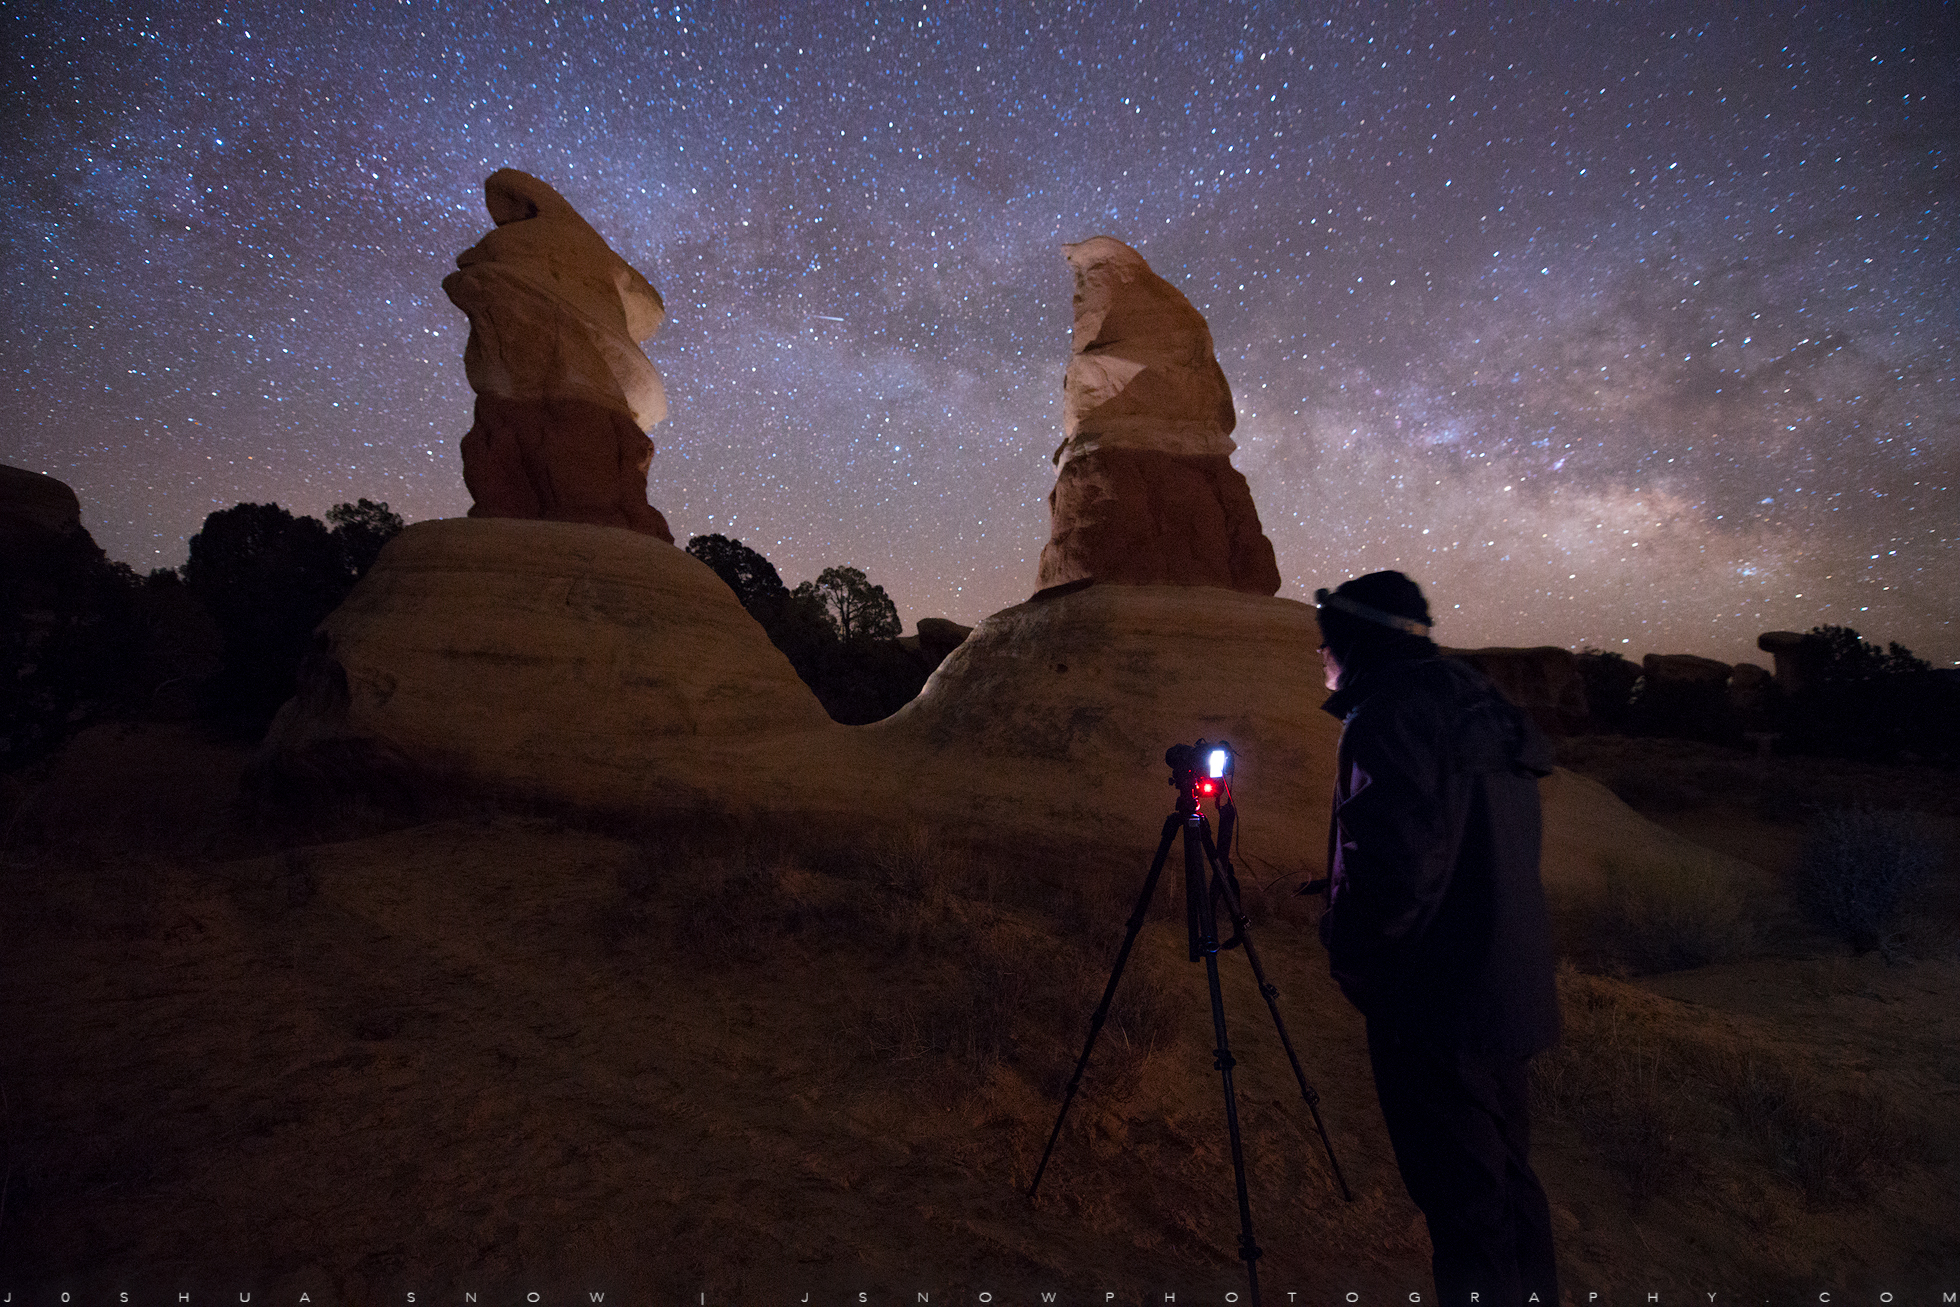 Night Photography, Workshop, Education, Milky Way, stars, Utah, Joshua Snow